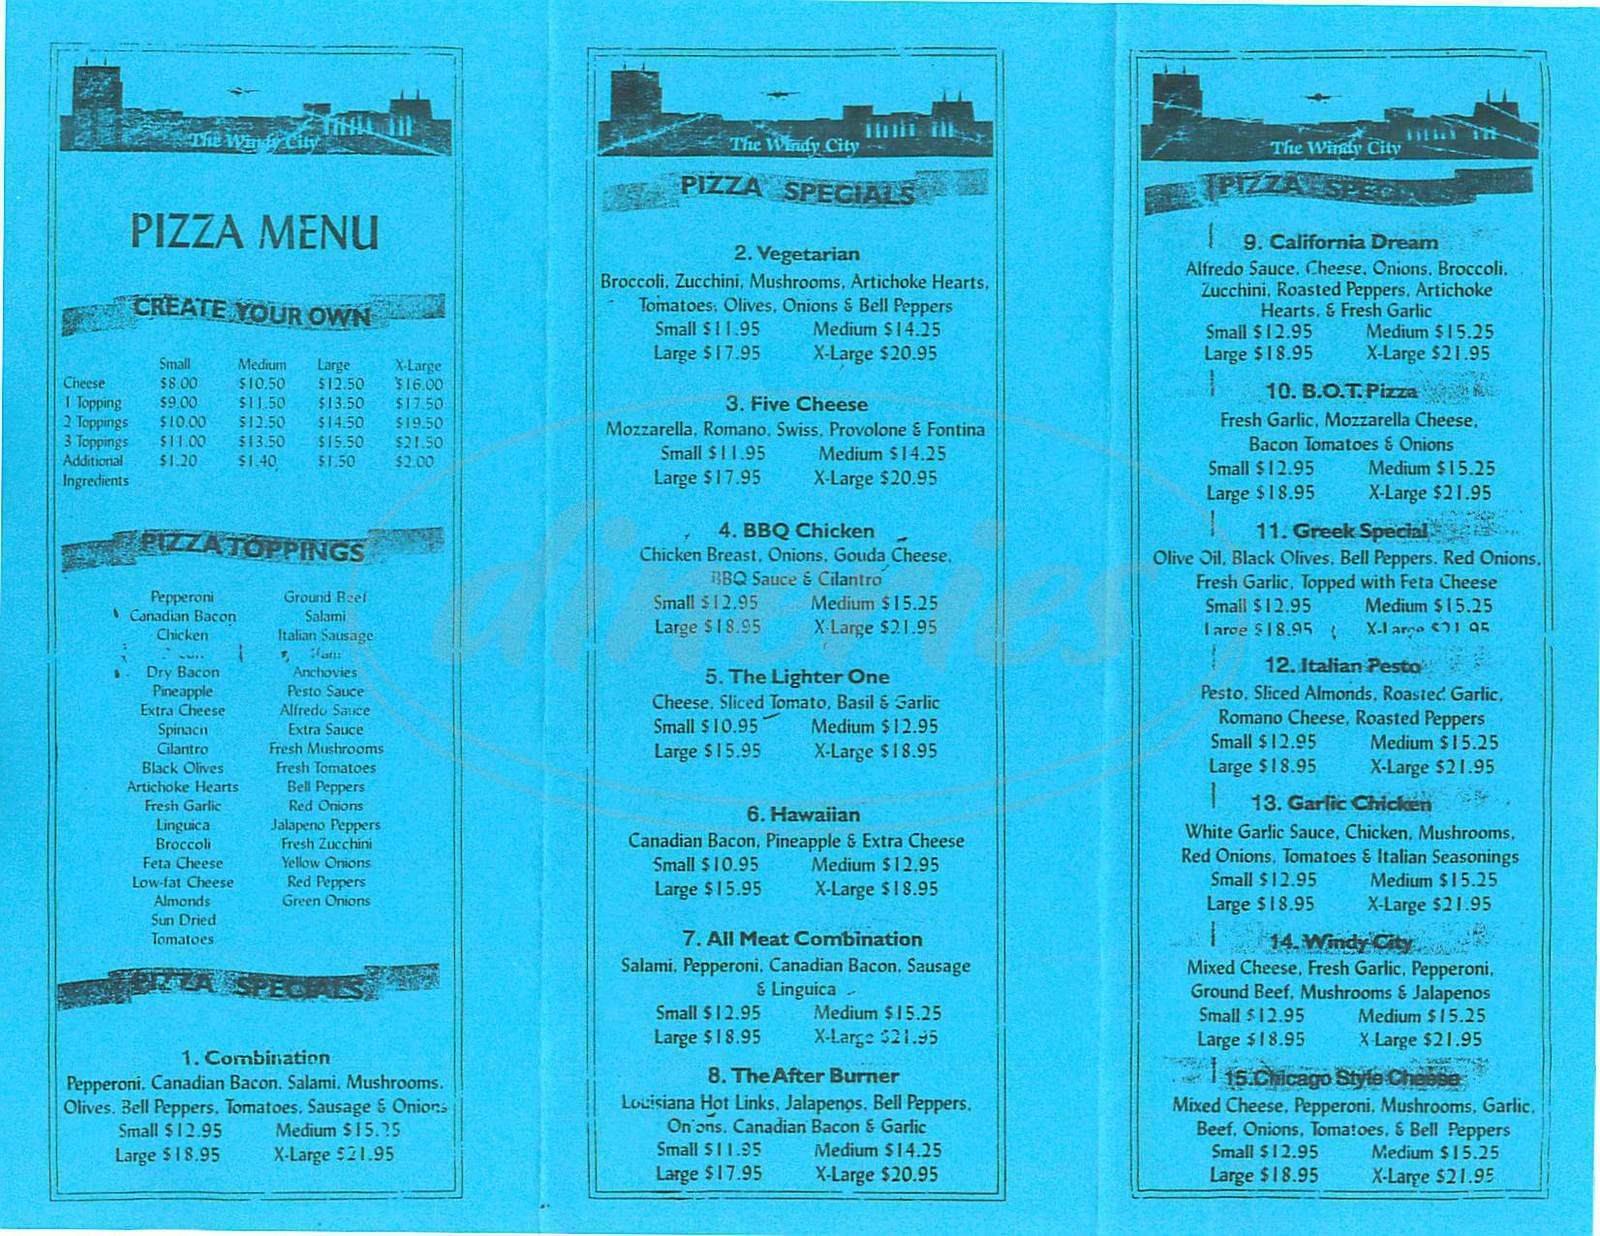 menu for Chicago Style Pizza